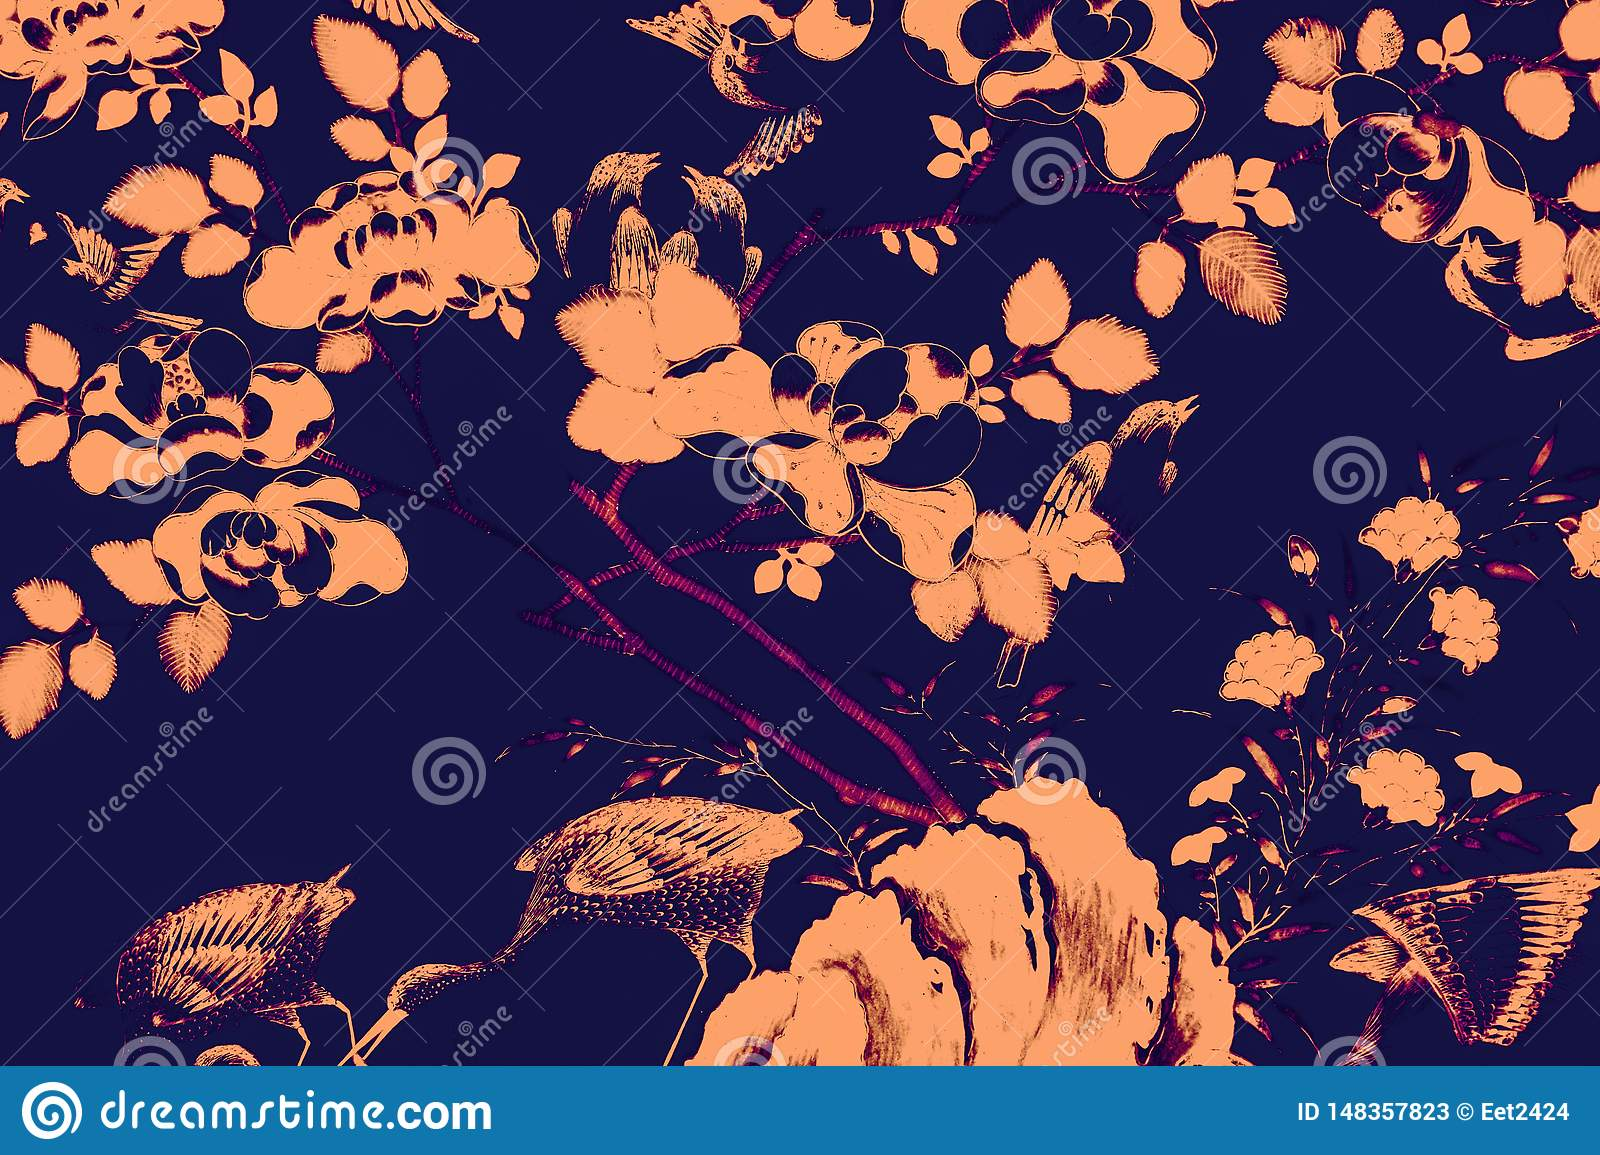 Beautiful tree bird and flowers art paintings color pink and black  illustration pattern background and wallpaper